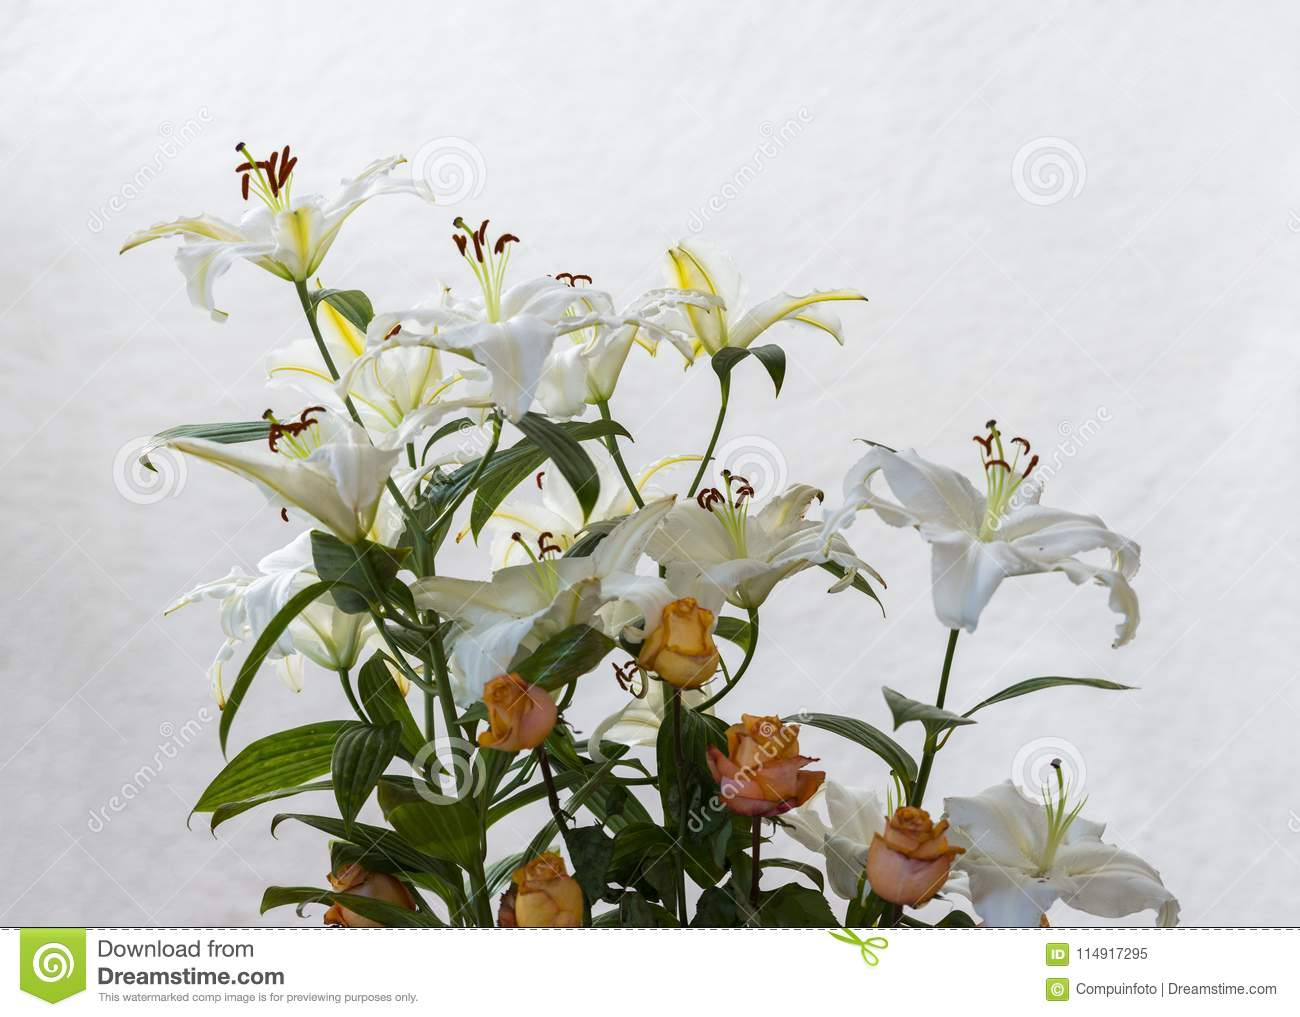 Bouquet Of Flowers Used For Condolence Stock Image - Image of green ...